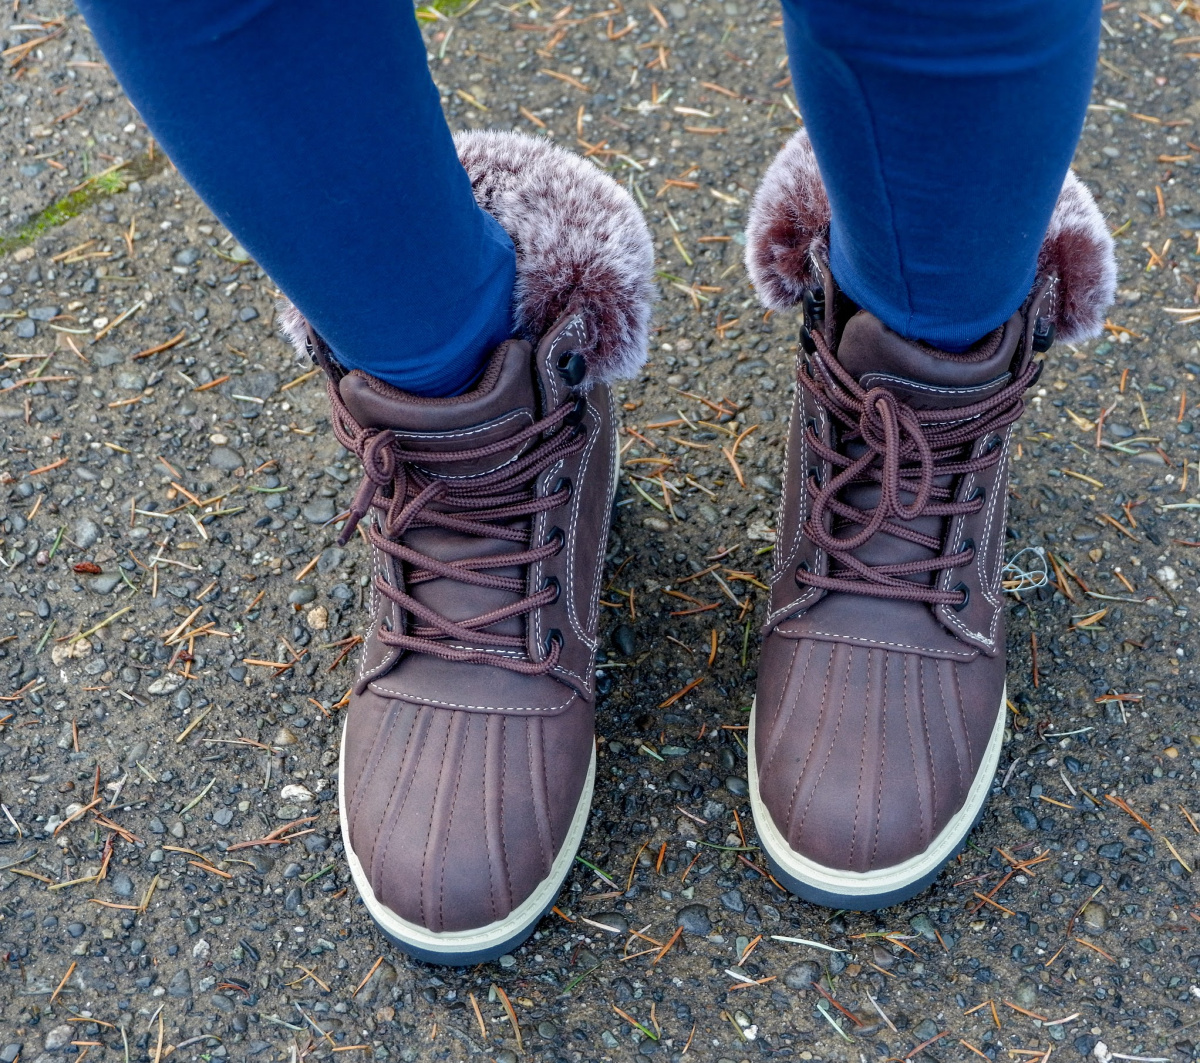 quality womens boots